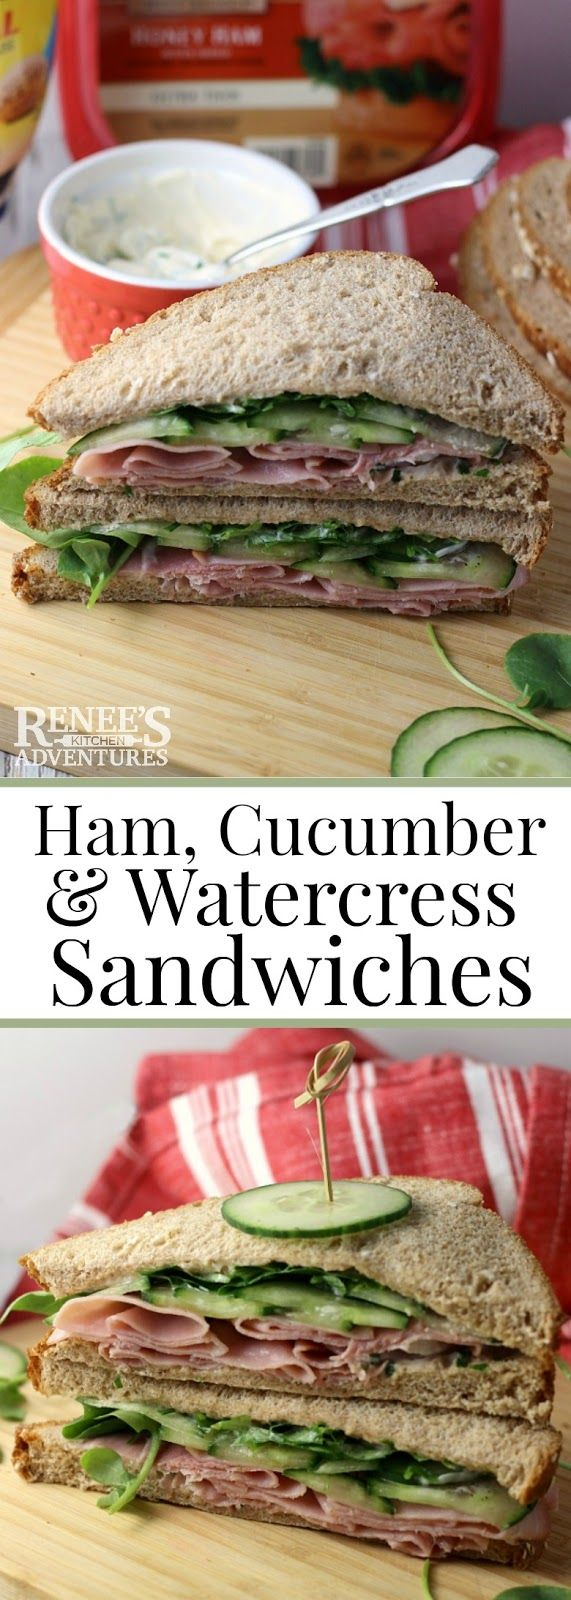 Ham, Cucumber and Watercress Sandwiches   Renee's Kitchen Adventures - easy sandwich recipe made with chive mayonnaise, ham, cucumbers and watercress. Great dinner or light lunch. #SandwichWithTheBest #ad